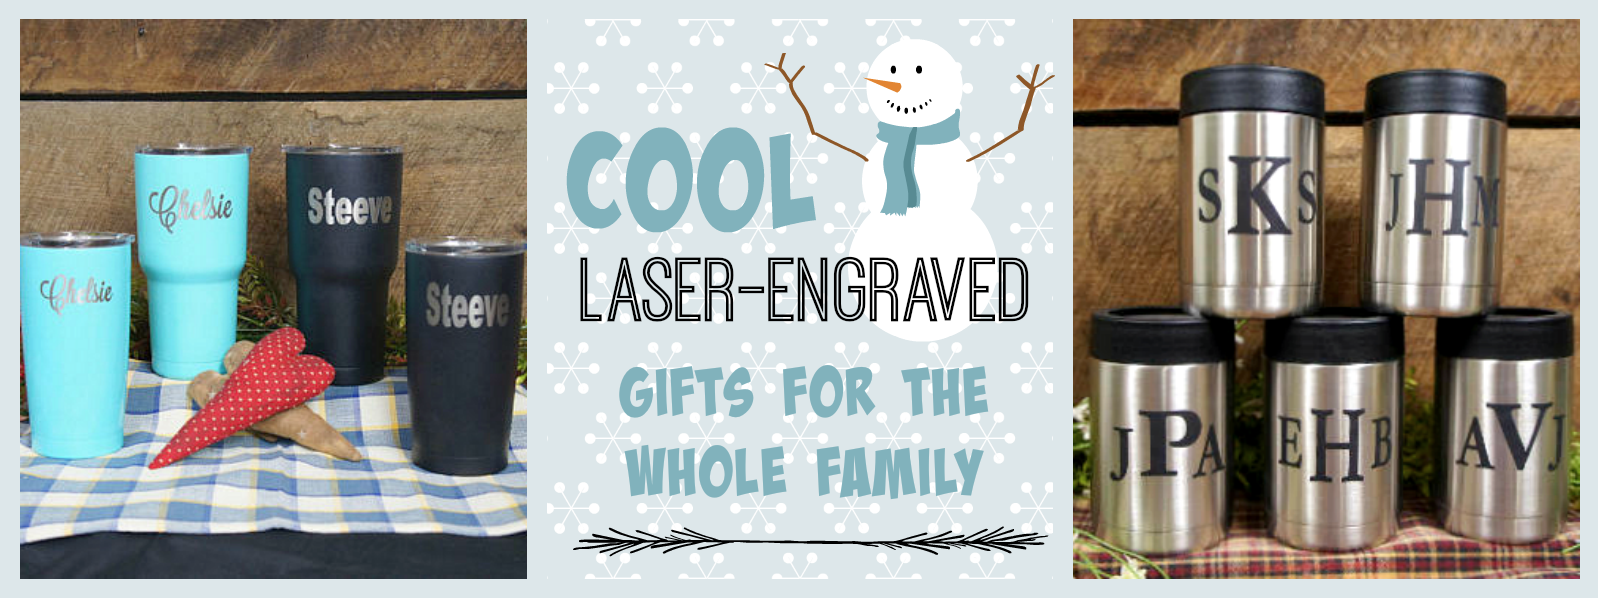 Cool Laser-Engraved Gifts For the Whole Family